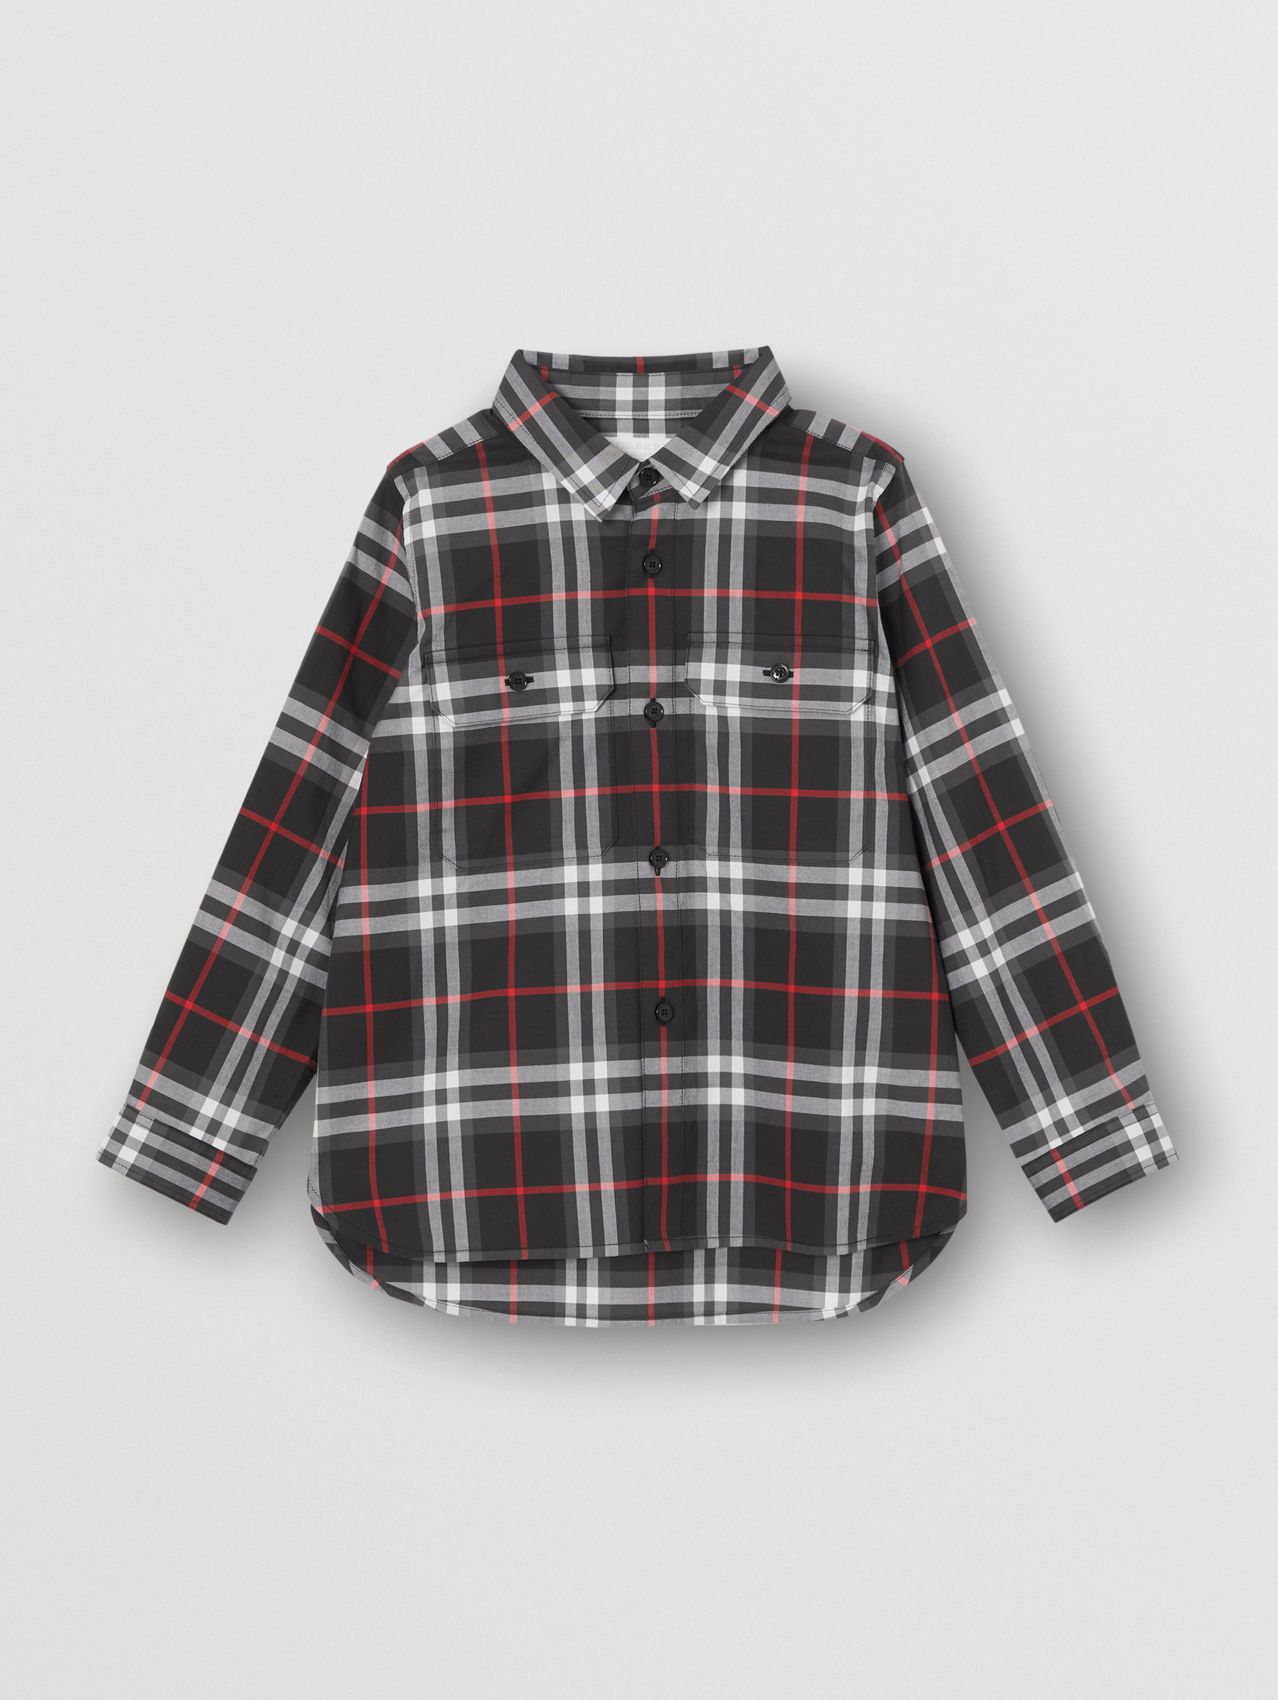 Vintage Check Cotton Shirt in Black